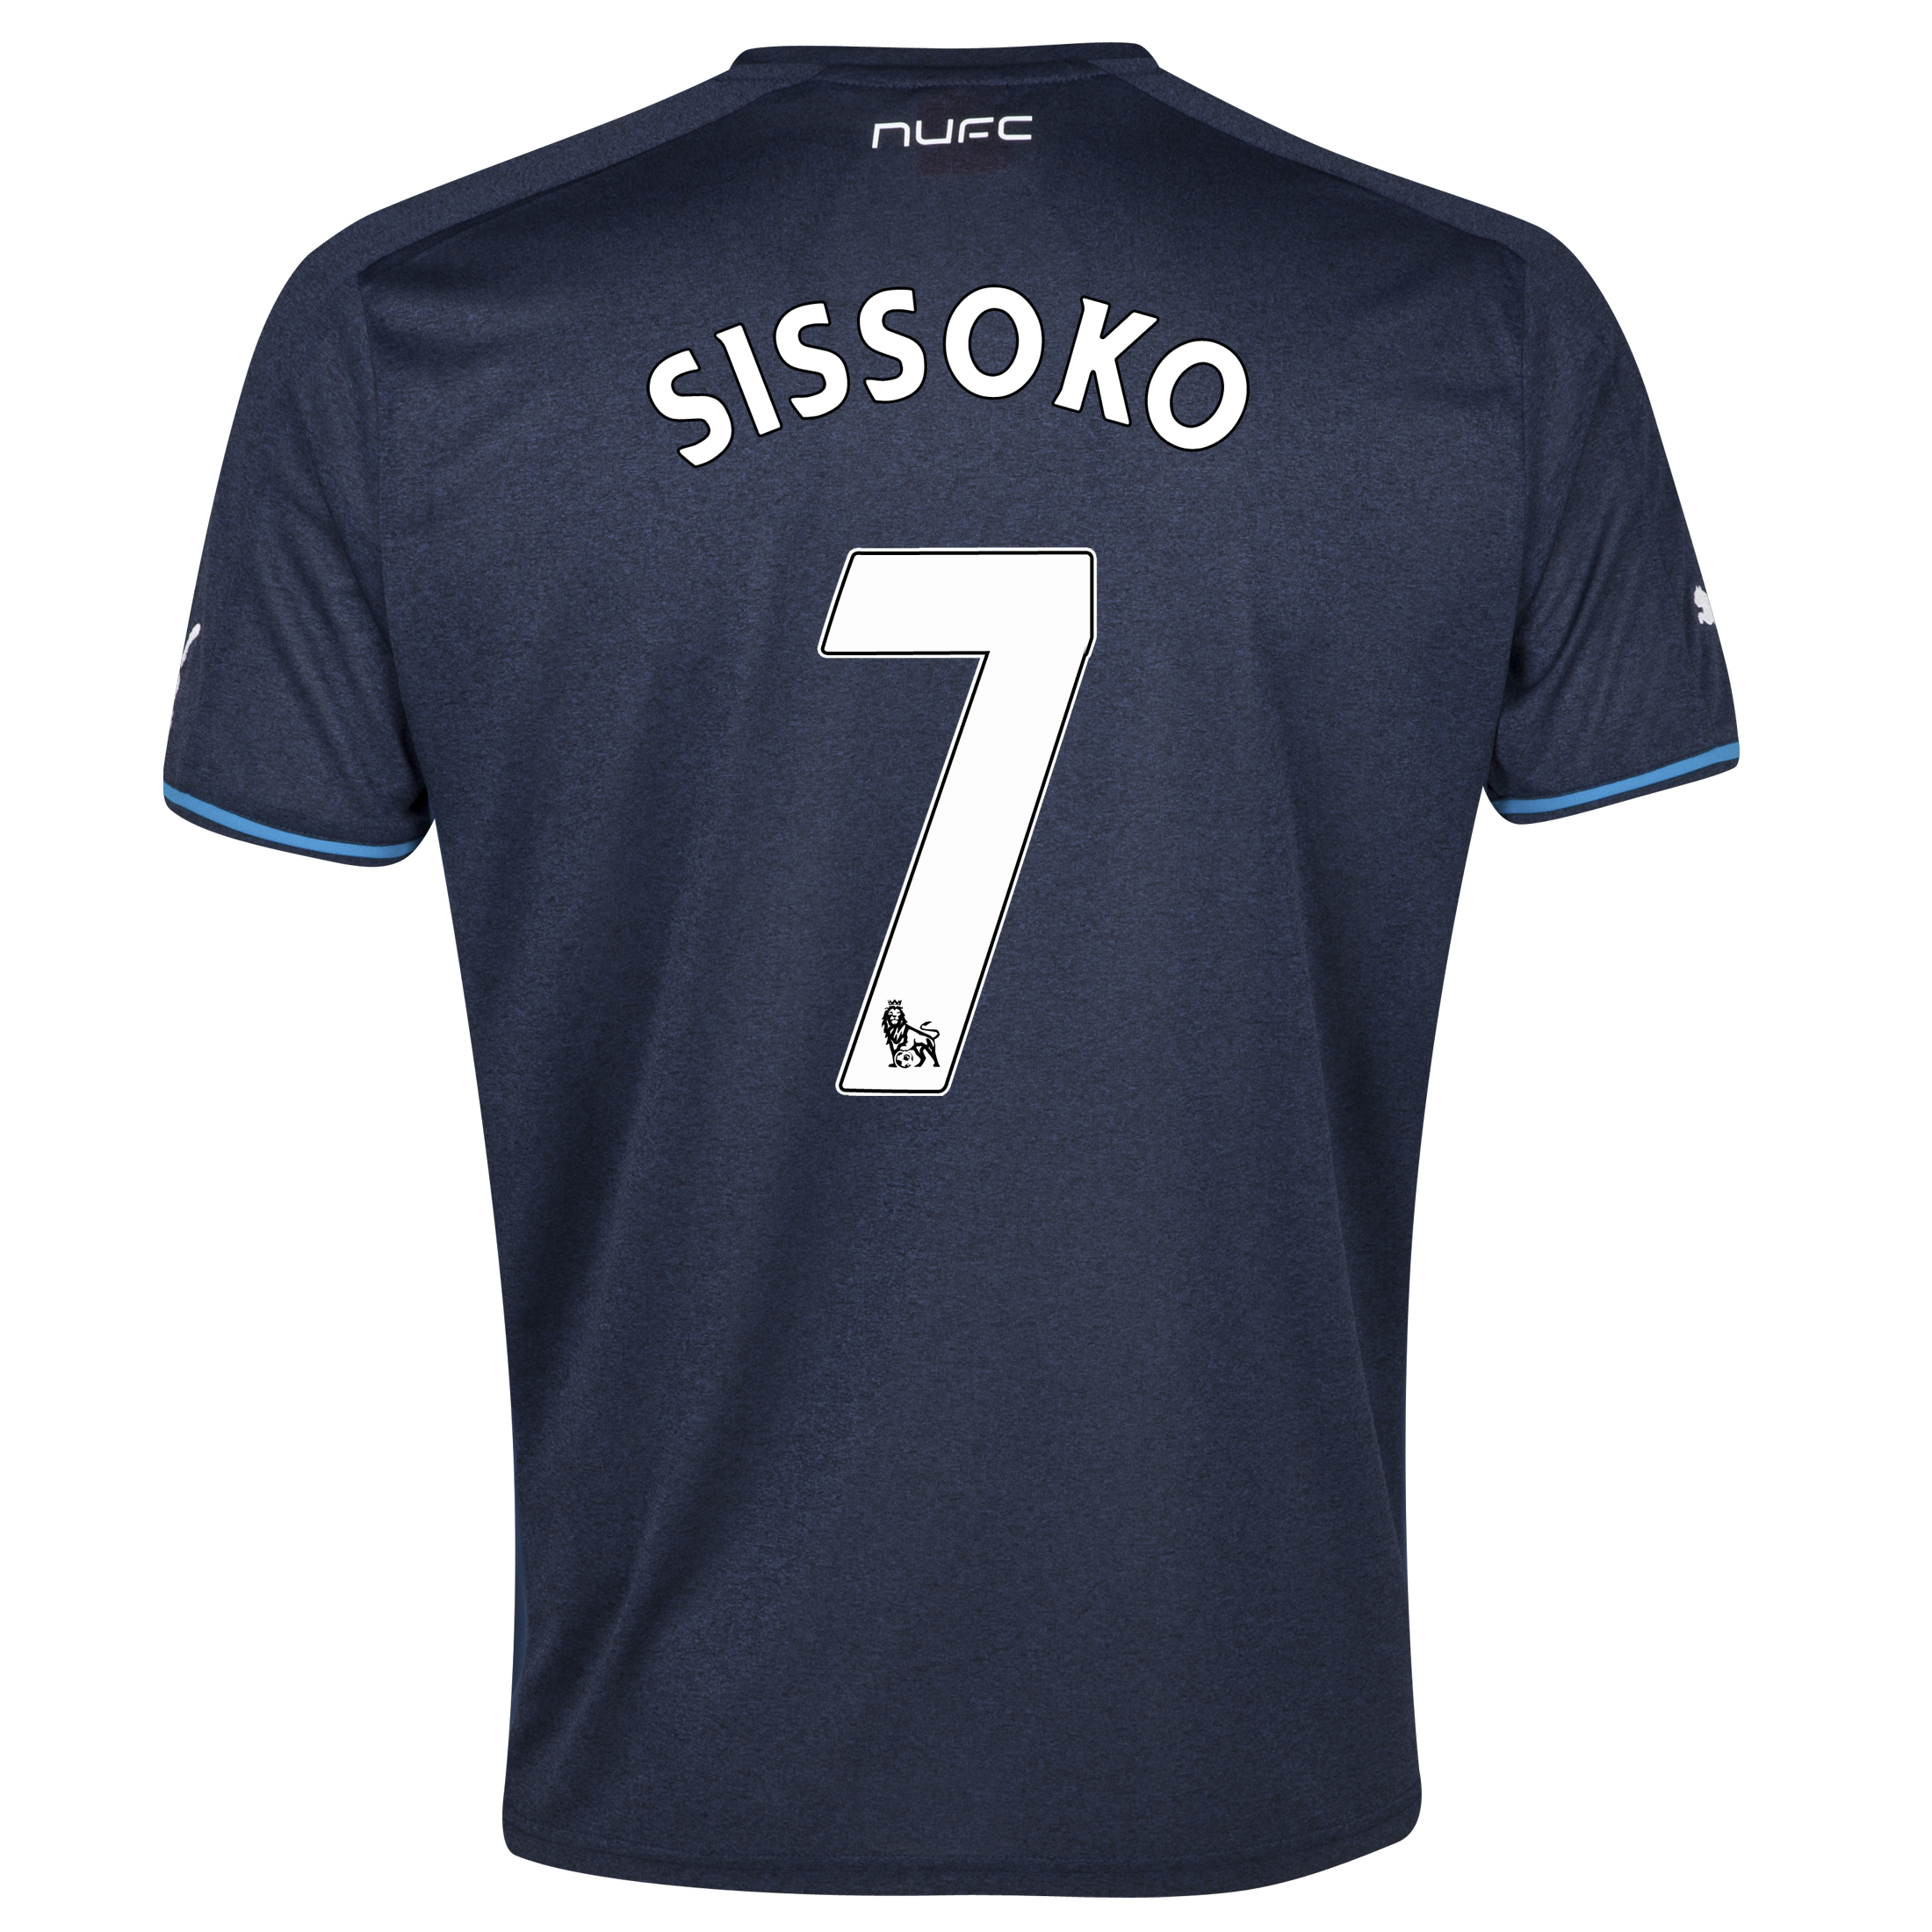 Newcastle United Away Shirt 2013/14 with Sissoko 7 printing